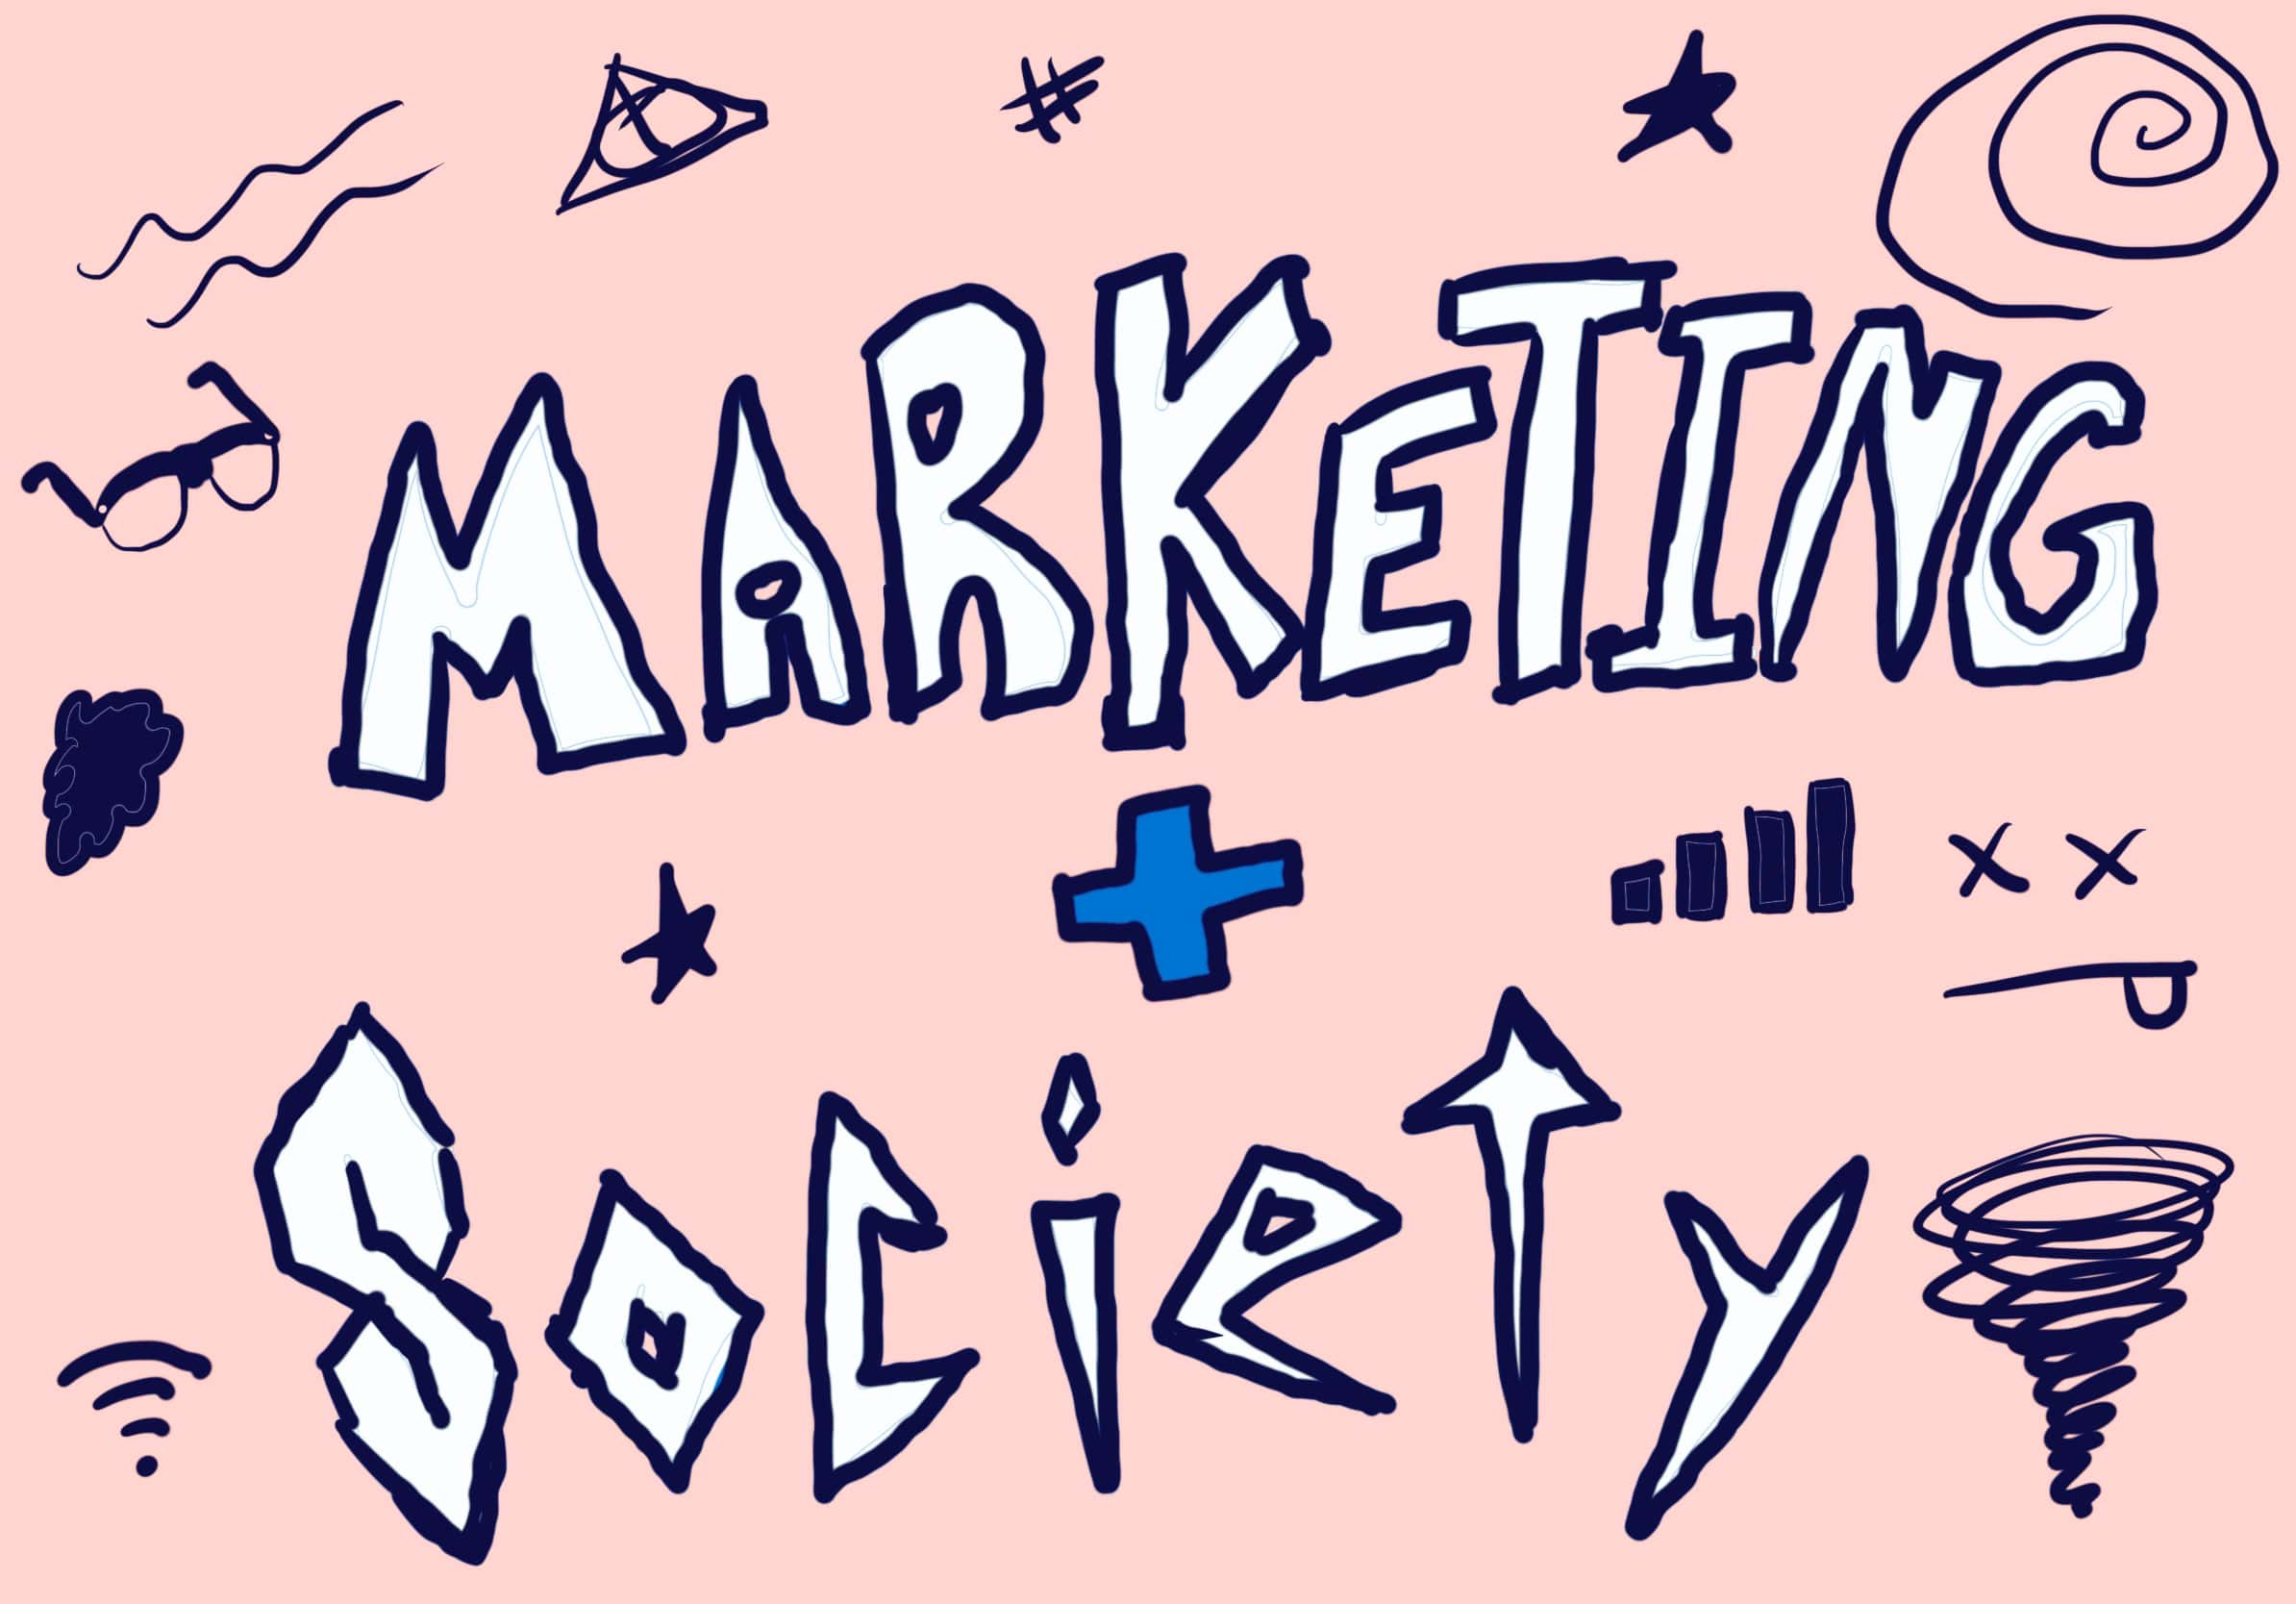 What role does marketing play in our society today?